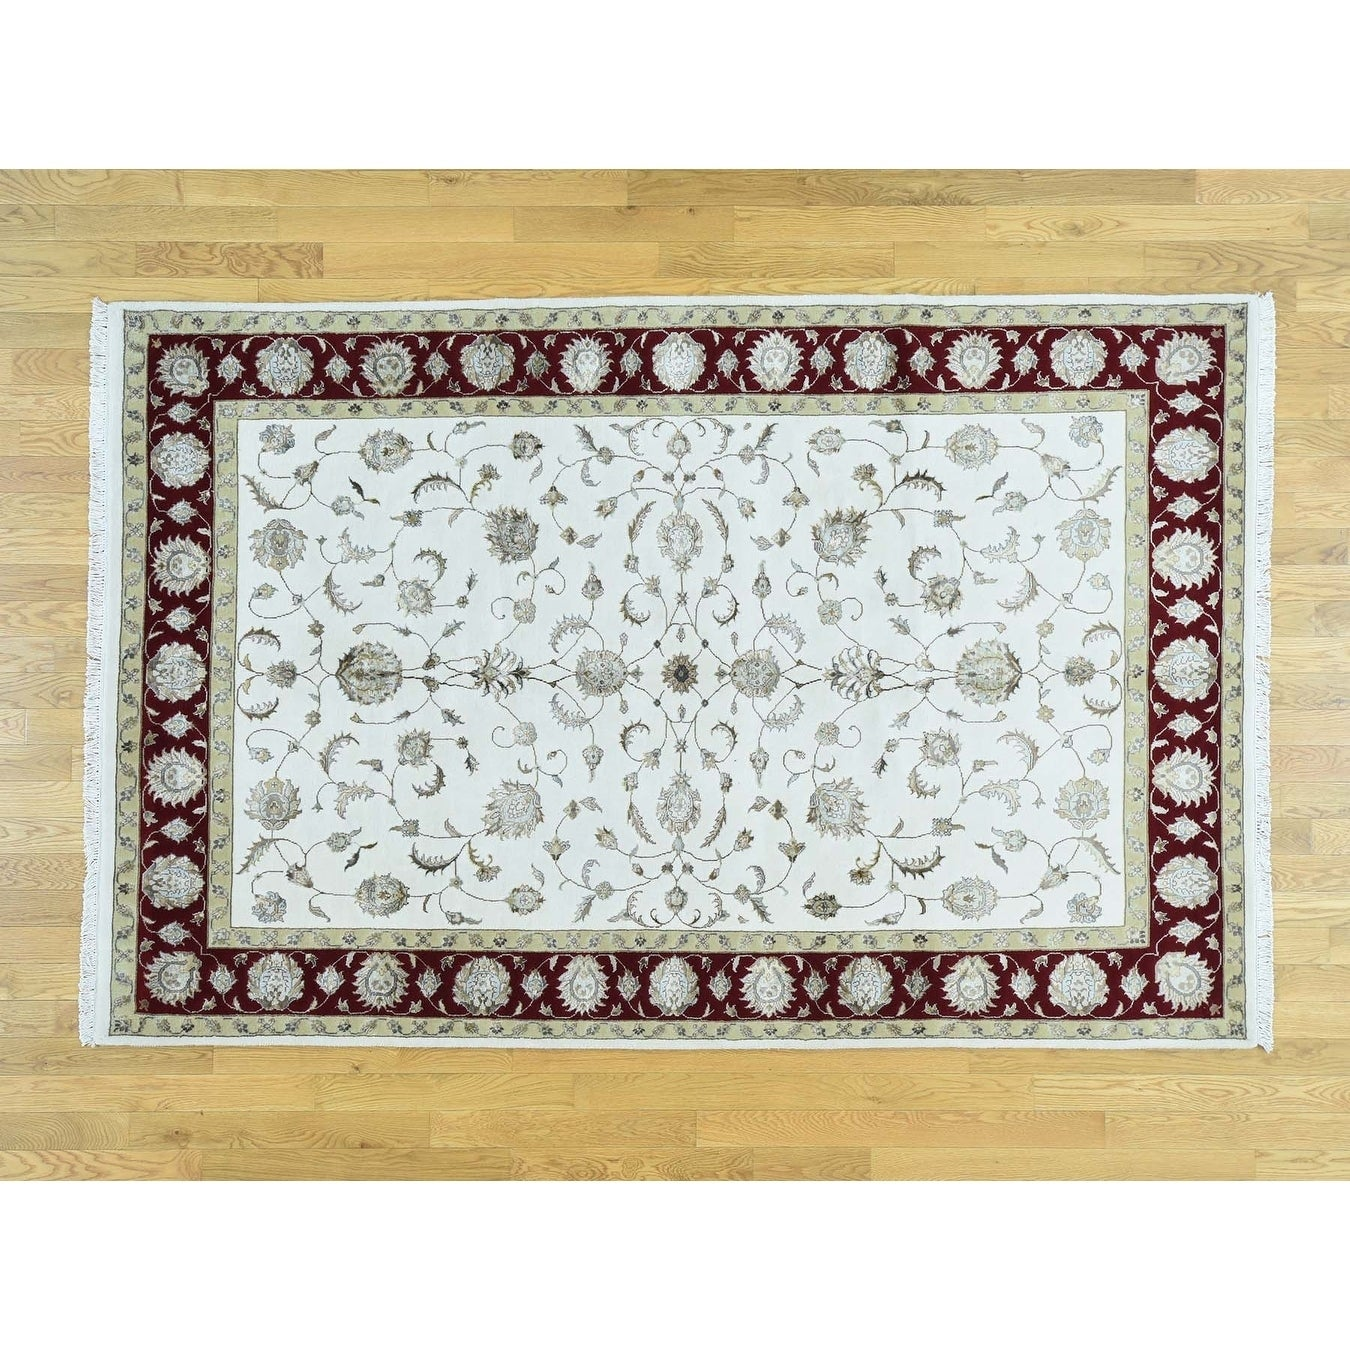 Hand Knotted Red Rajasthan with Wool & Silk Oriental Rug - 57 x 88